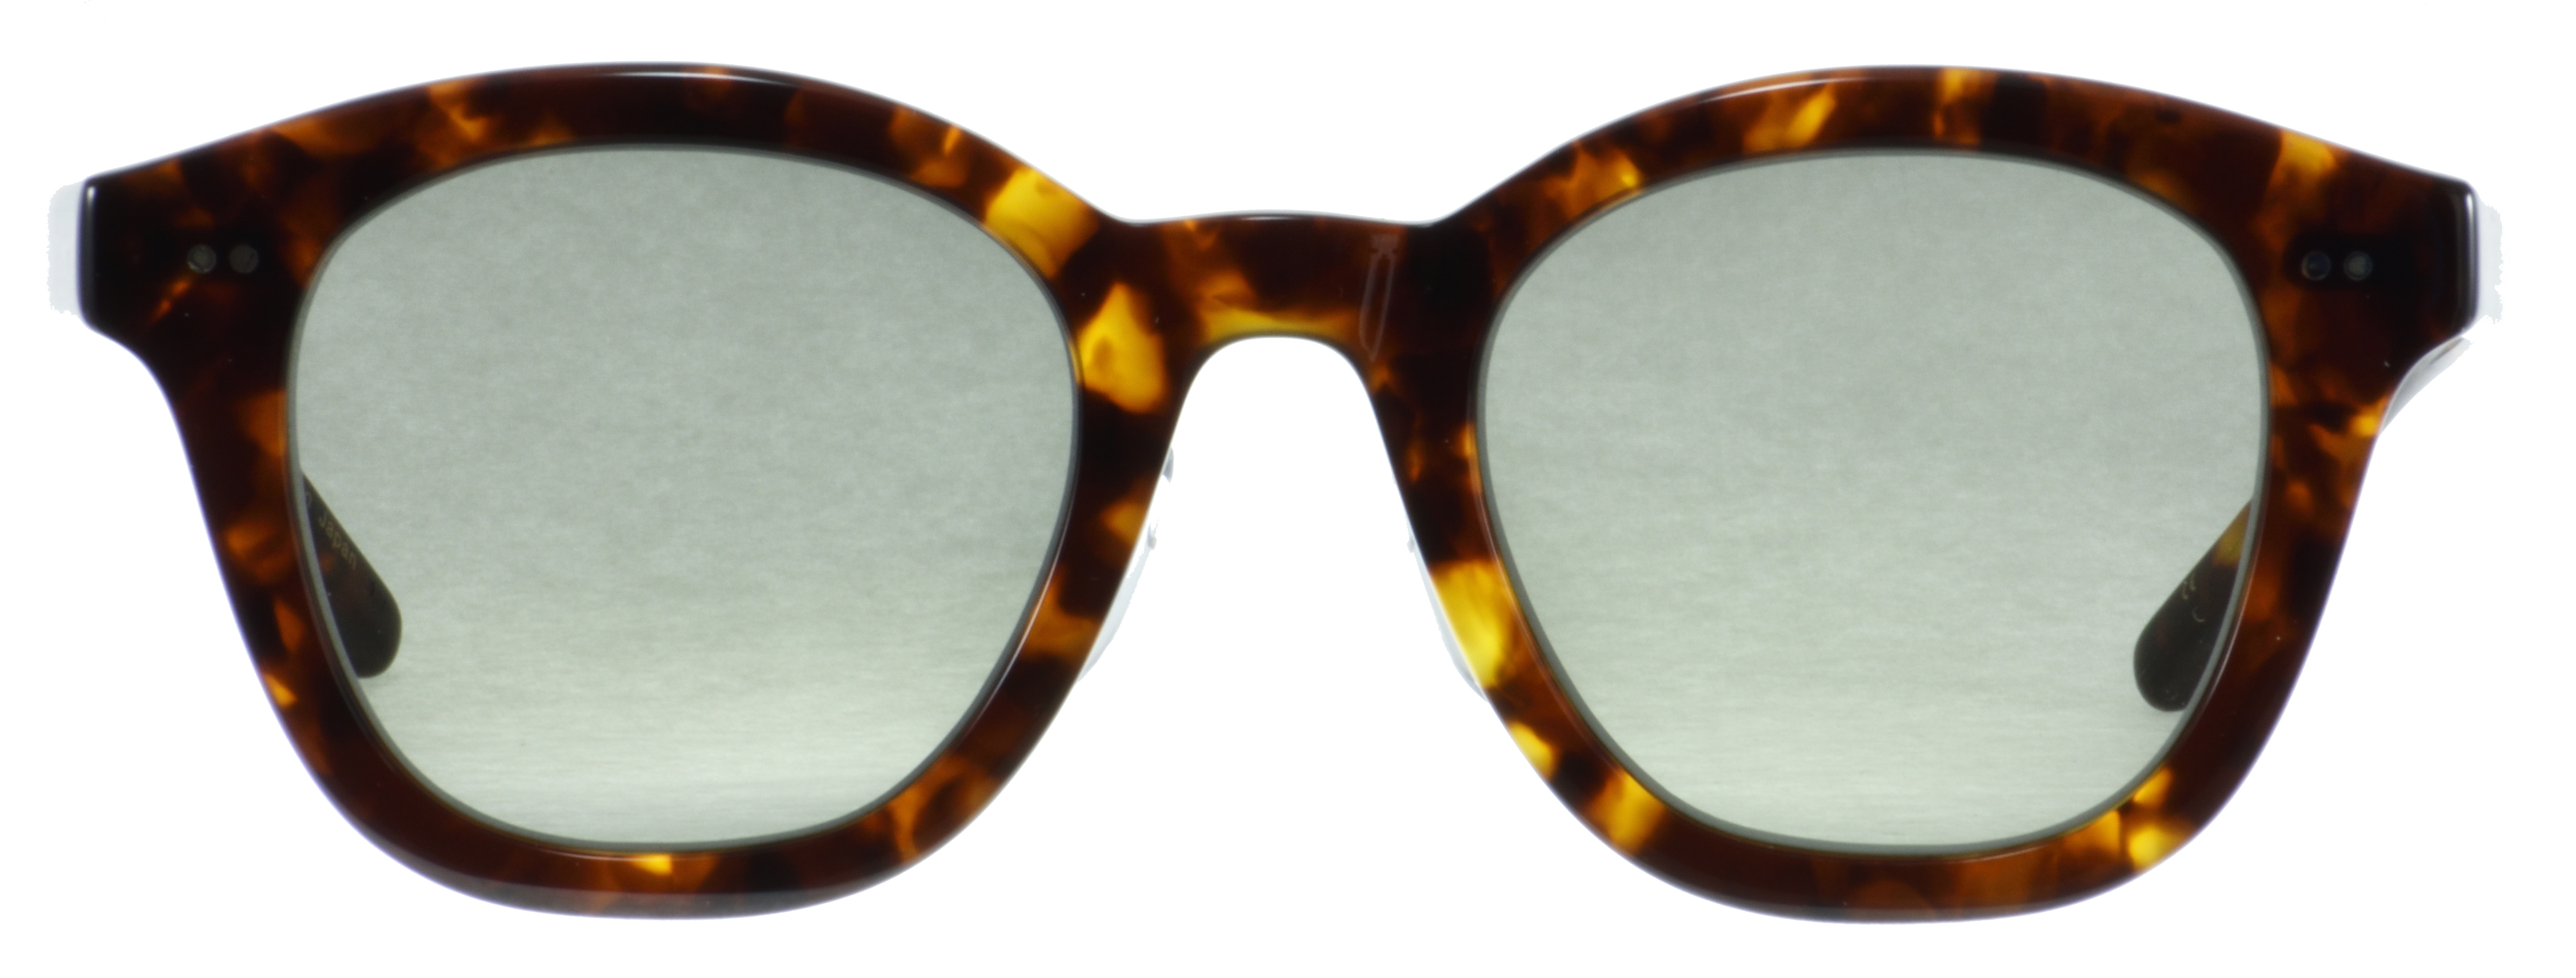 OLIVER PEOPLES EBONEE DM2-G15